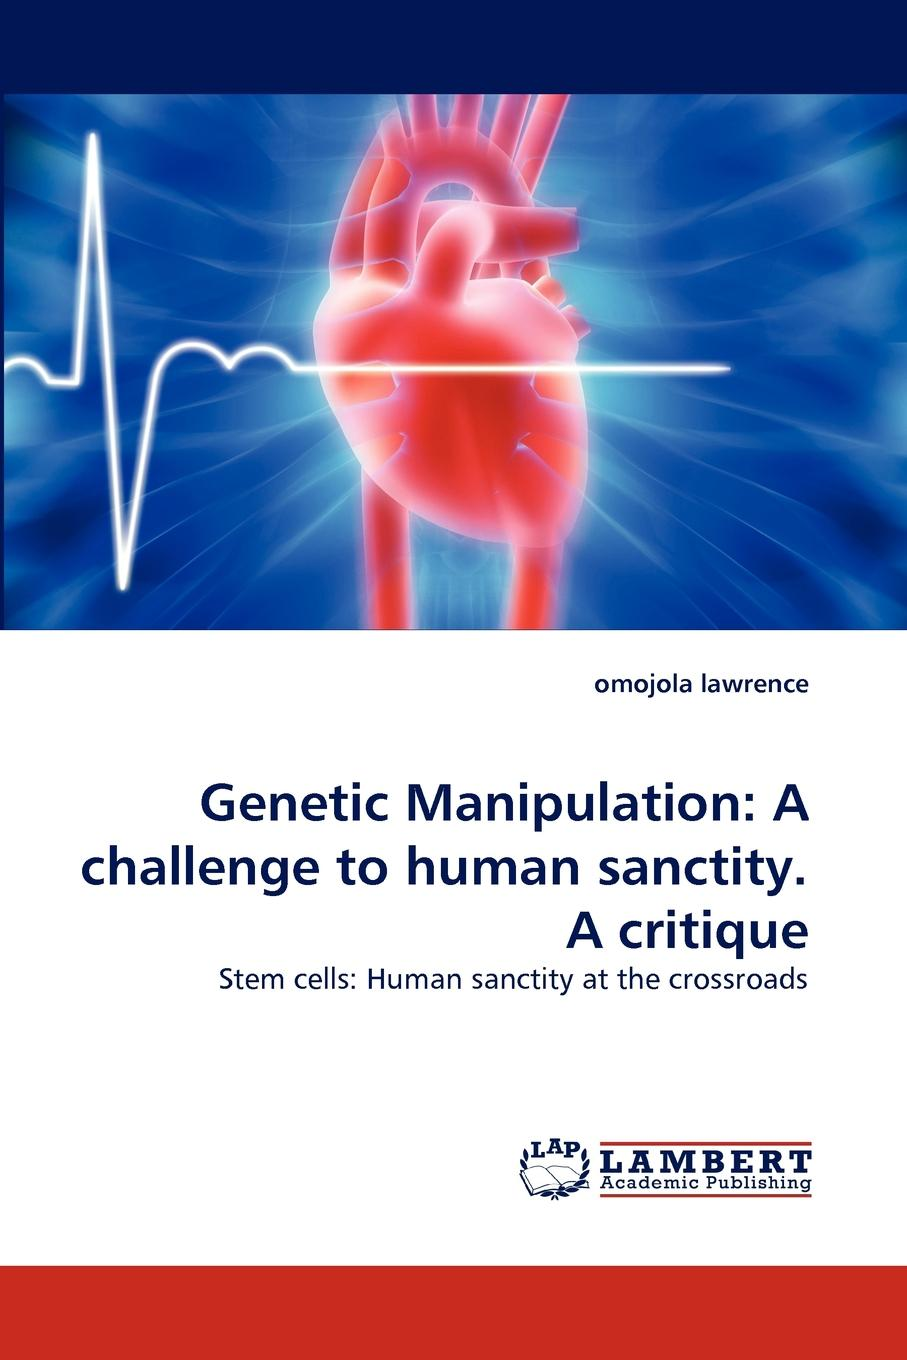 omojola lawrence Genetic Manipulation. A challenge to human sanctity. A critique searching for arguments